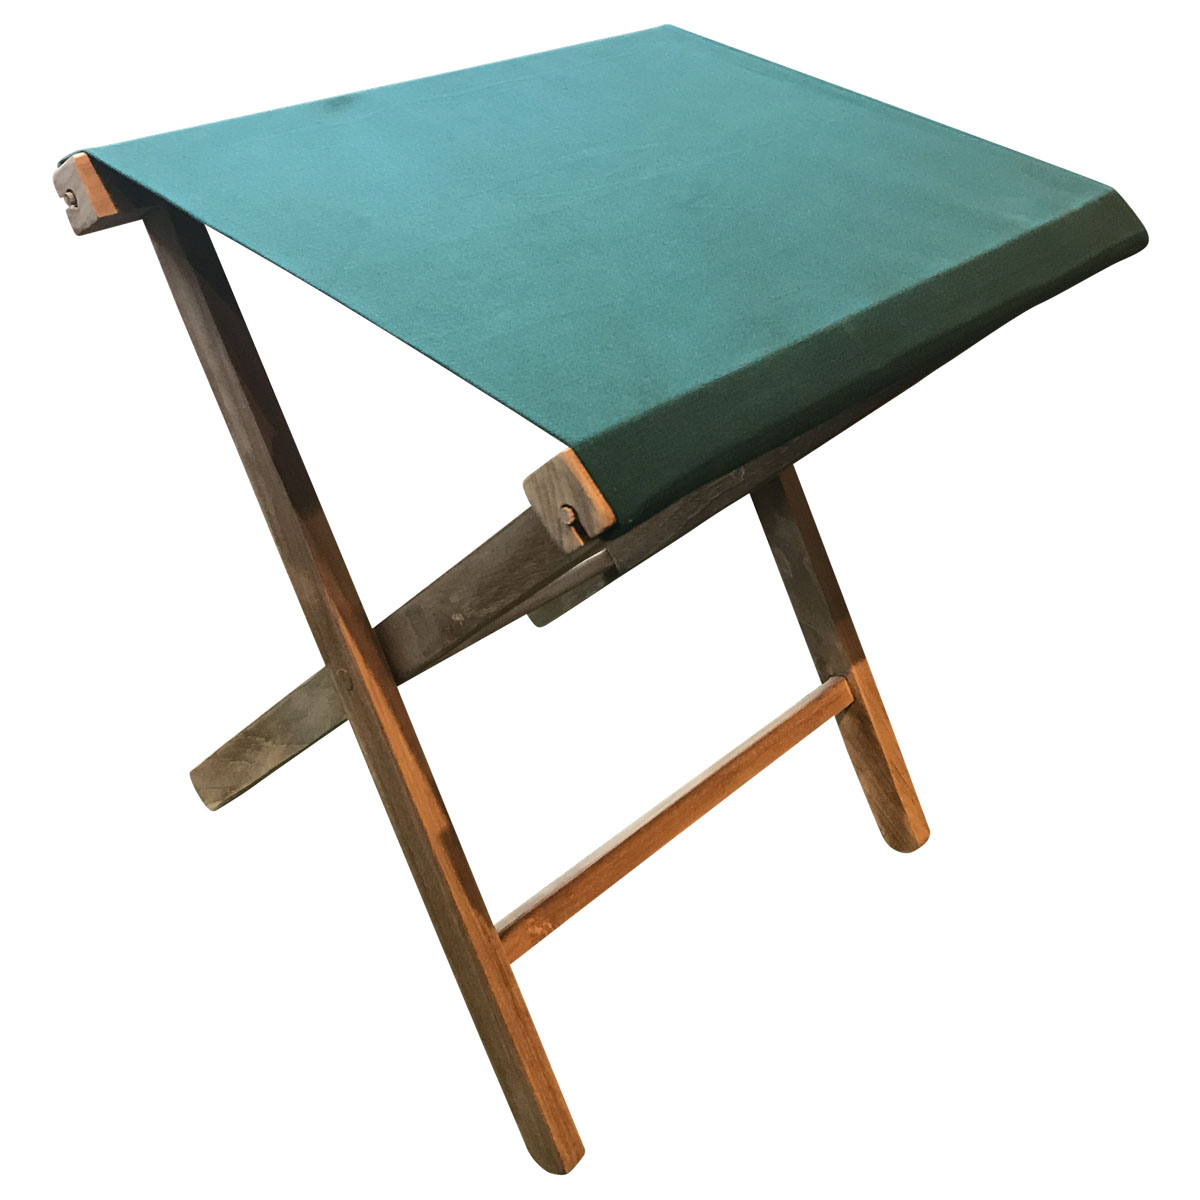 dark green- Portable Folding Stools with Striped Seats